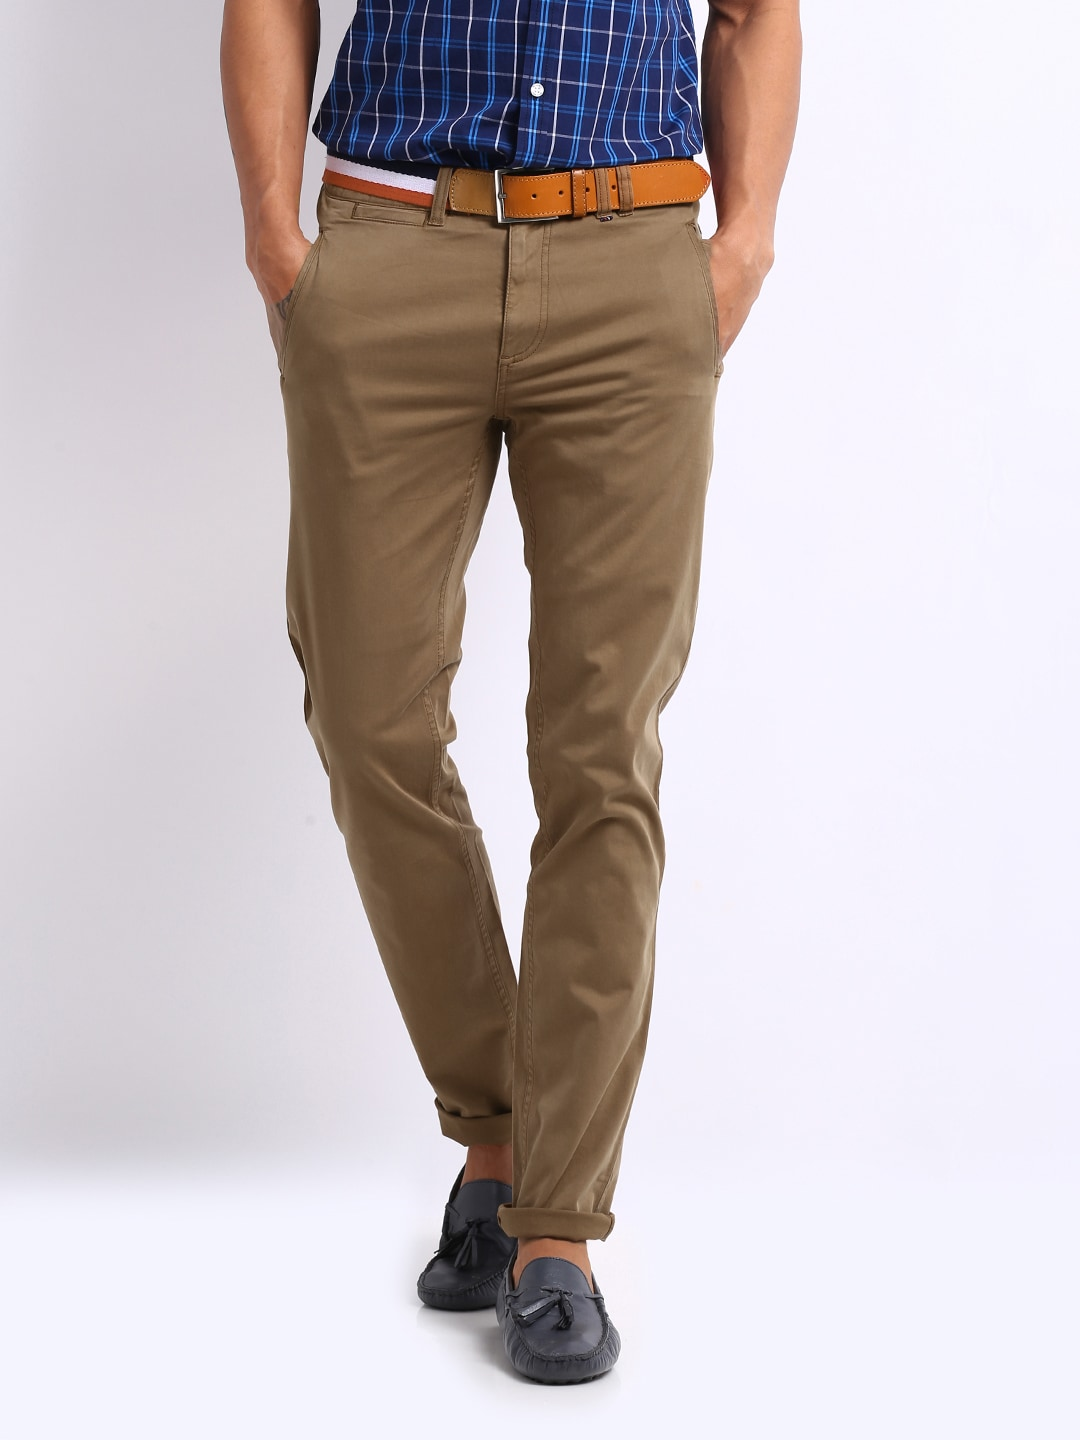 Find dark brown chinos at ShopStyle. Shop the latest collection of dark brown chinos from the most popular stores - all in one place.